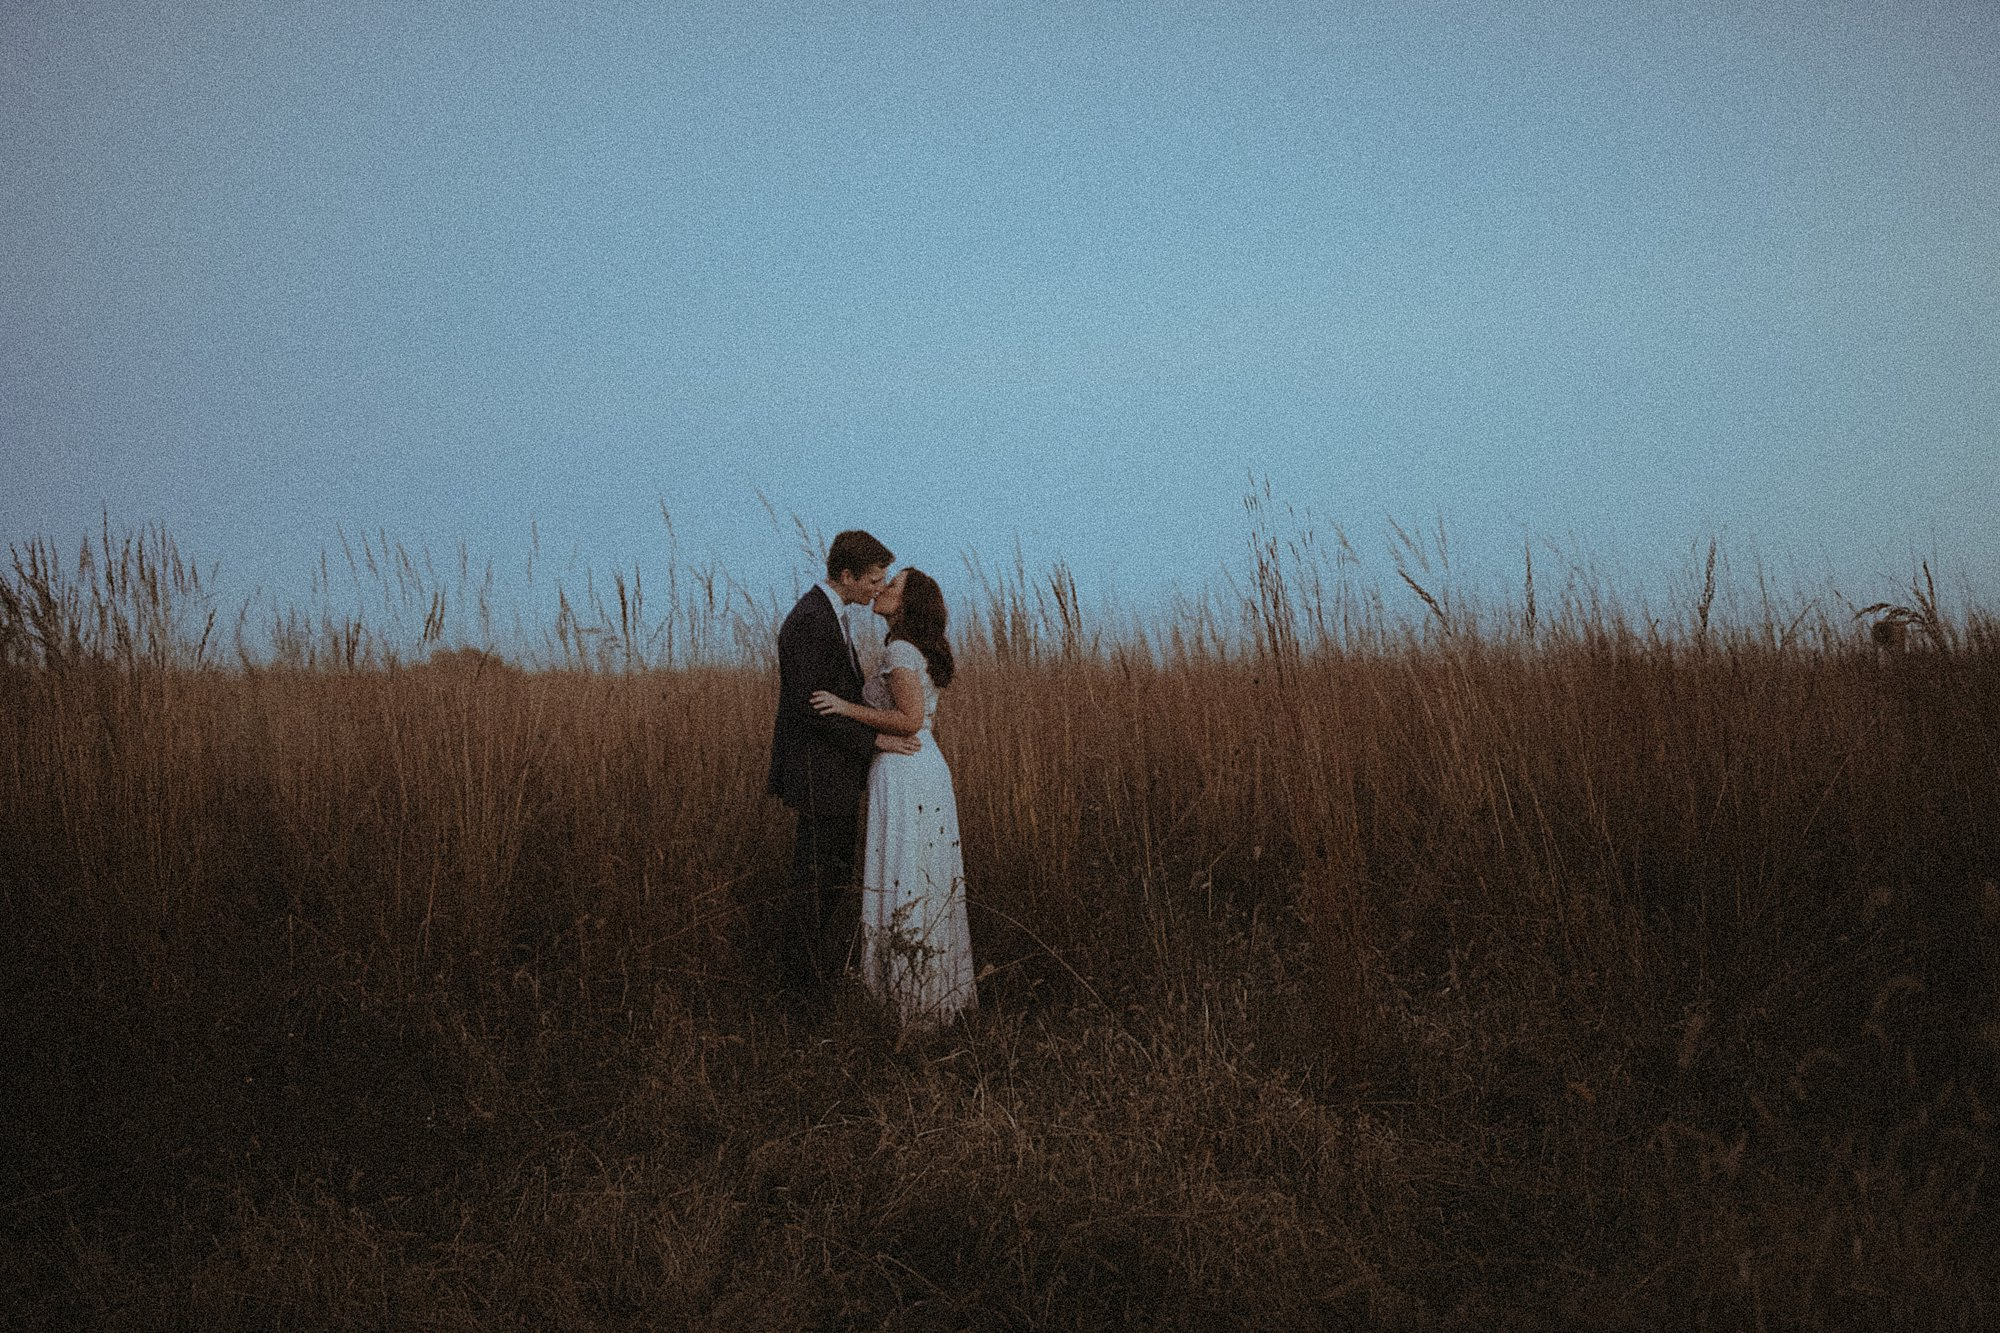 bride and groom kissing at dusk in field of grass